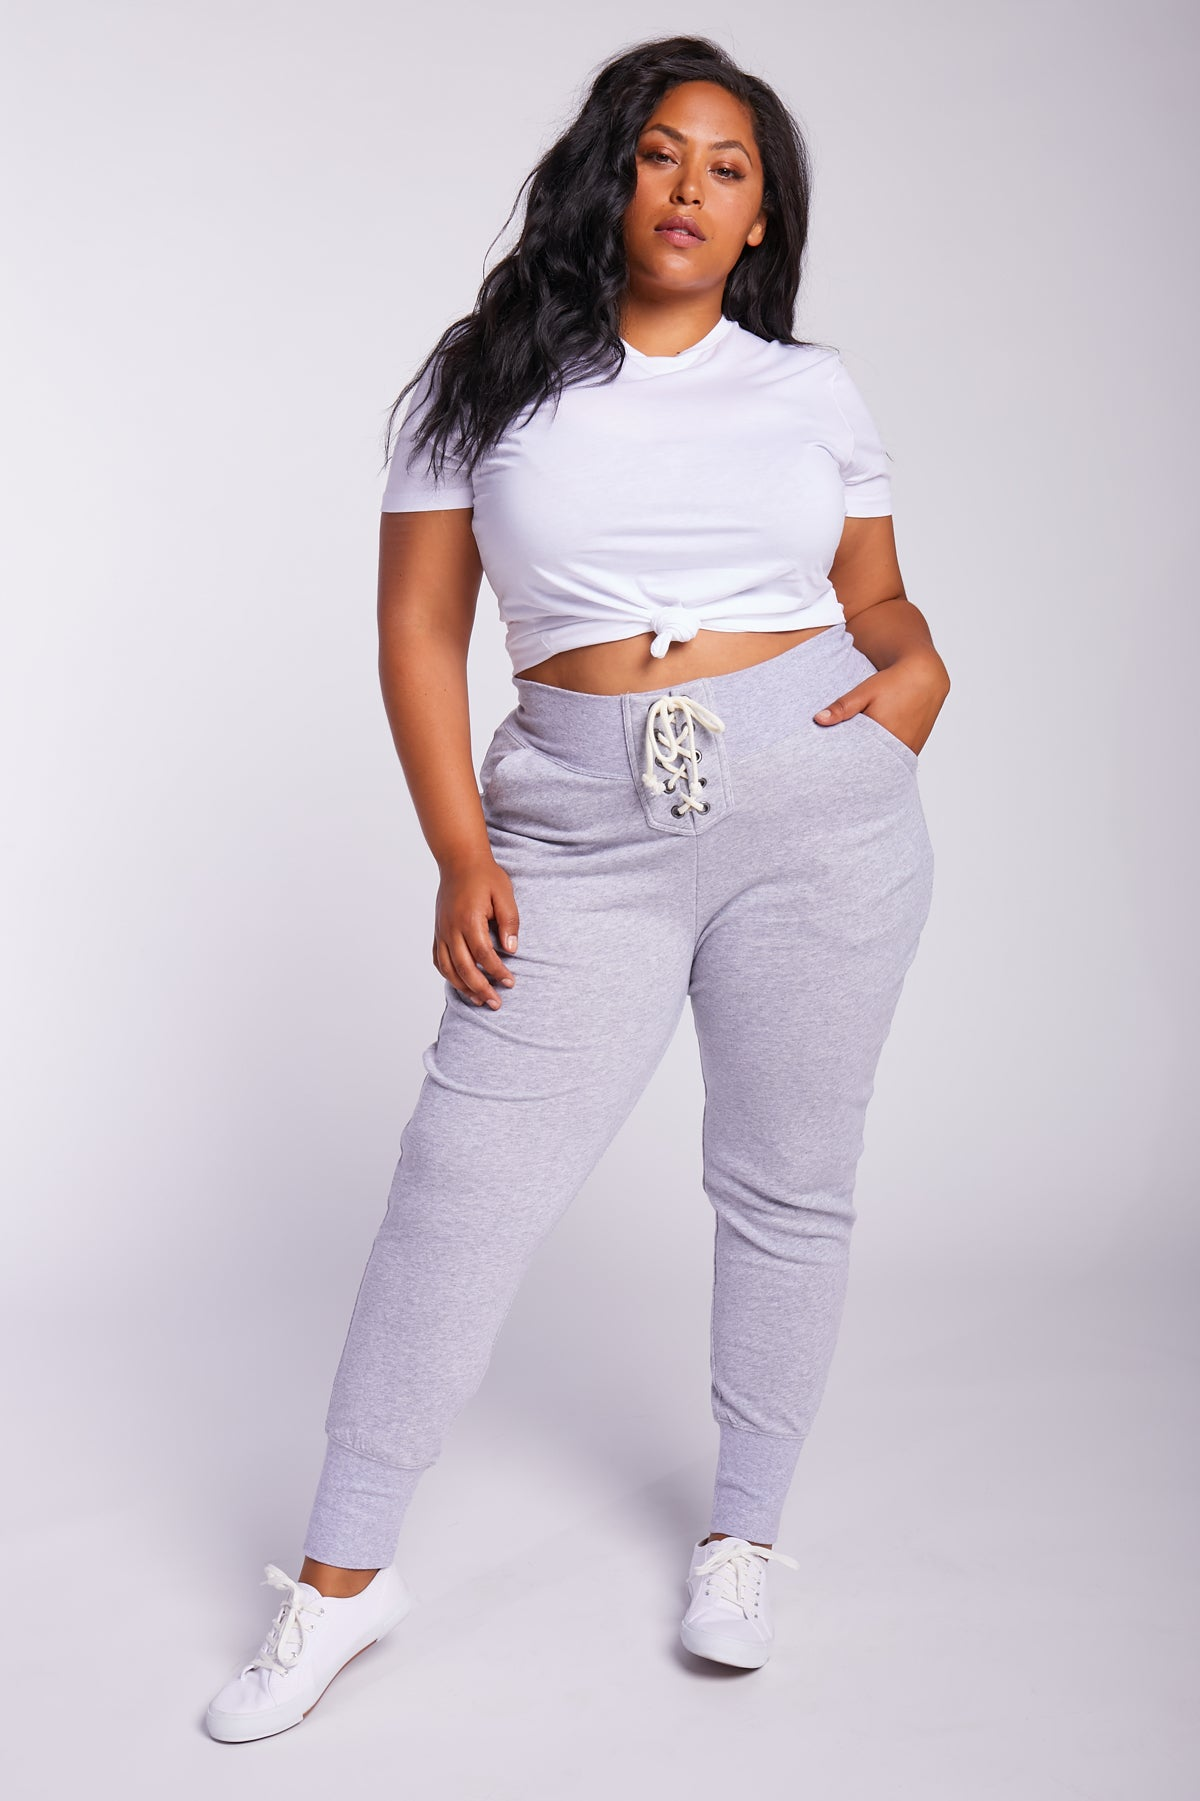 Lazy Sunday Lace-Up Sweatpants